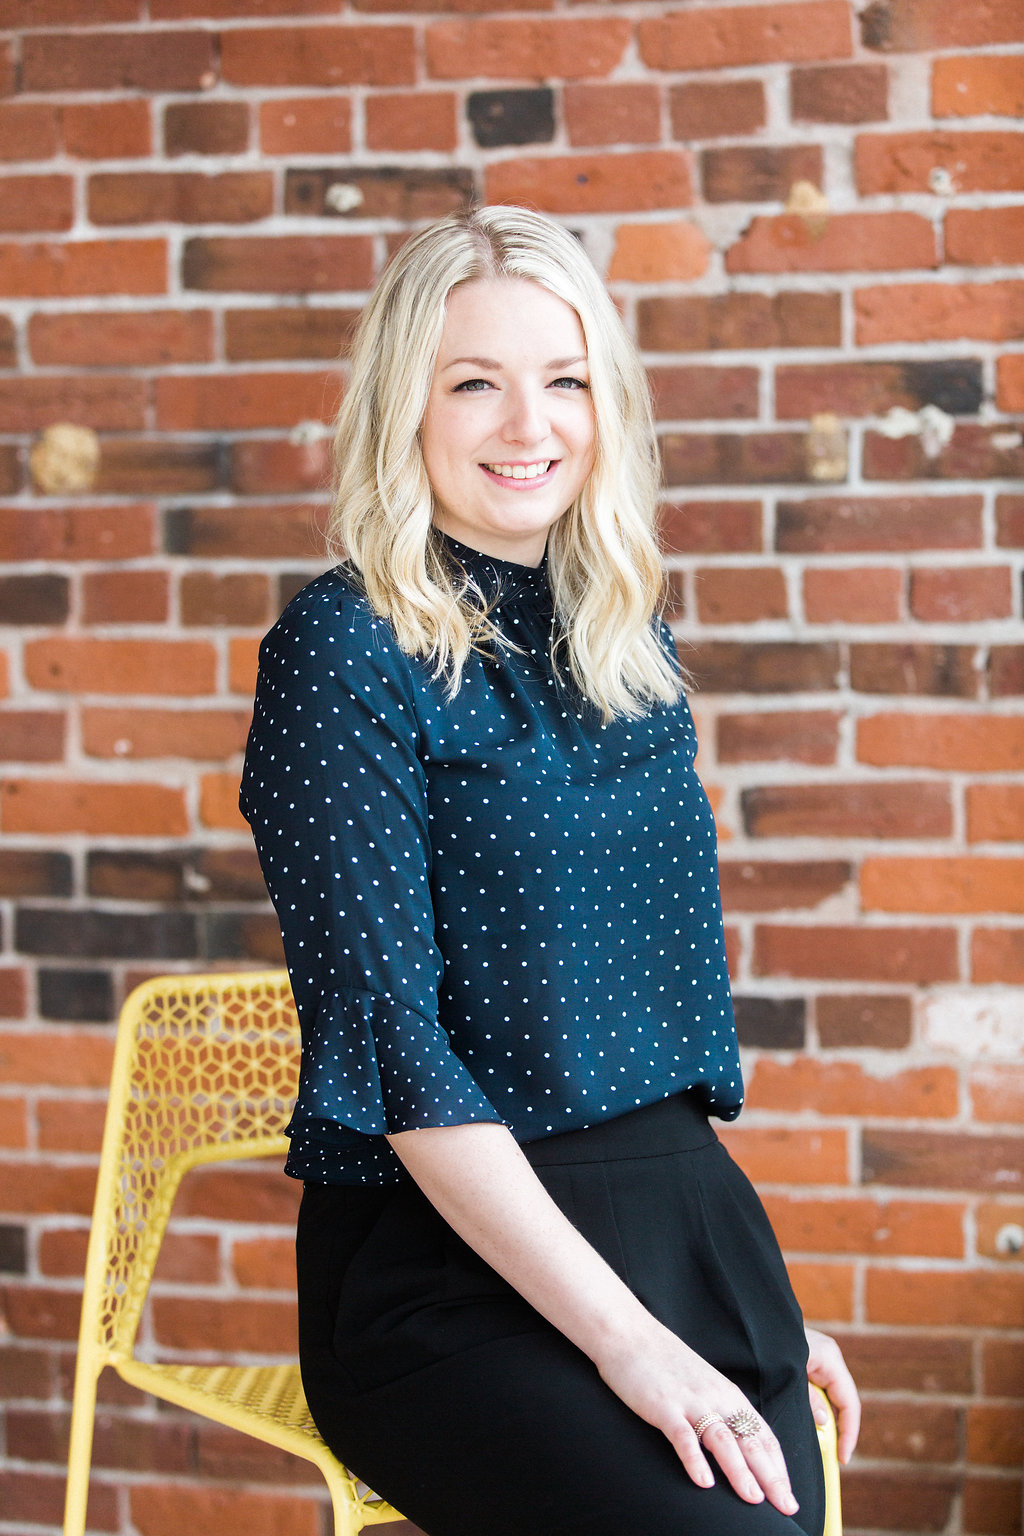 Laura Lilley - Laura got her start in the event industry in 2009 helping produce media events throughout Vancouver. She had a natural talent for events and her enthusiasm grew with each event she worked on. After she graduated Simon Fraser University with a Bachelors Degree in Communications she pursued event planning full time, planning weddings and corporate events throughout the Lower Mainland.  Laura enjoys sweating the small stuff so you don't have to. From the creation to the execution of an event, Laura is devoted to every aspect of the process. She has a keen eye for design and a desire to create an unforgettable experience for her clients and guests. Her goal is to put her client's at ease and let them enjoy their event knowing Laura has everything in control.